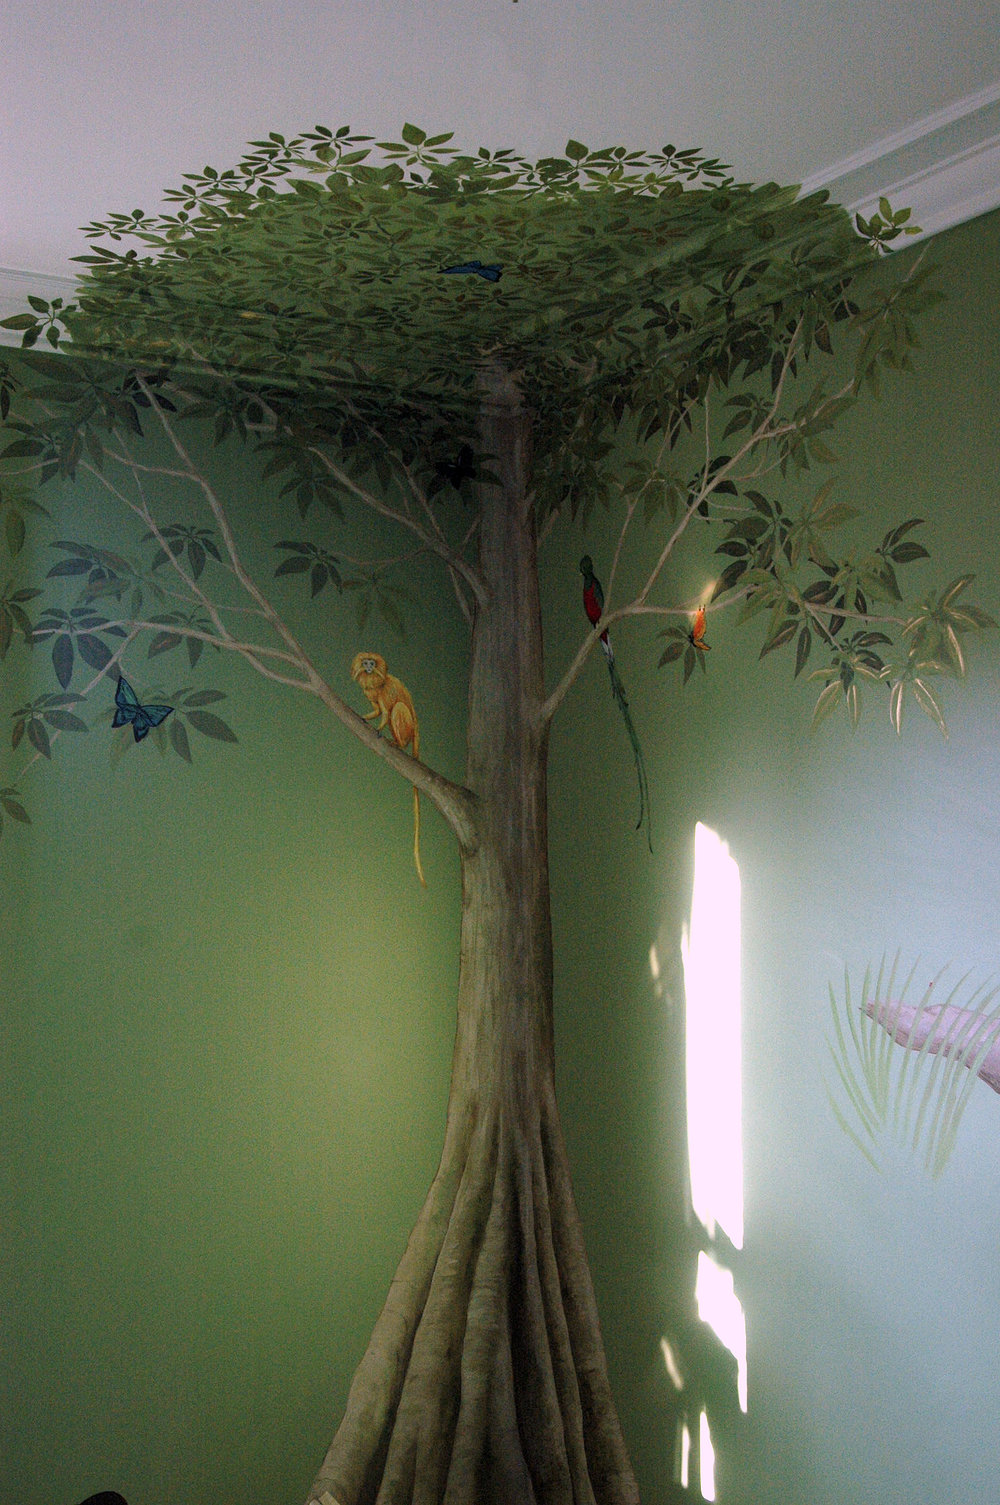 Rainforest Tree Frederick Wimsett - murals and artistic design - other projects.jpg